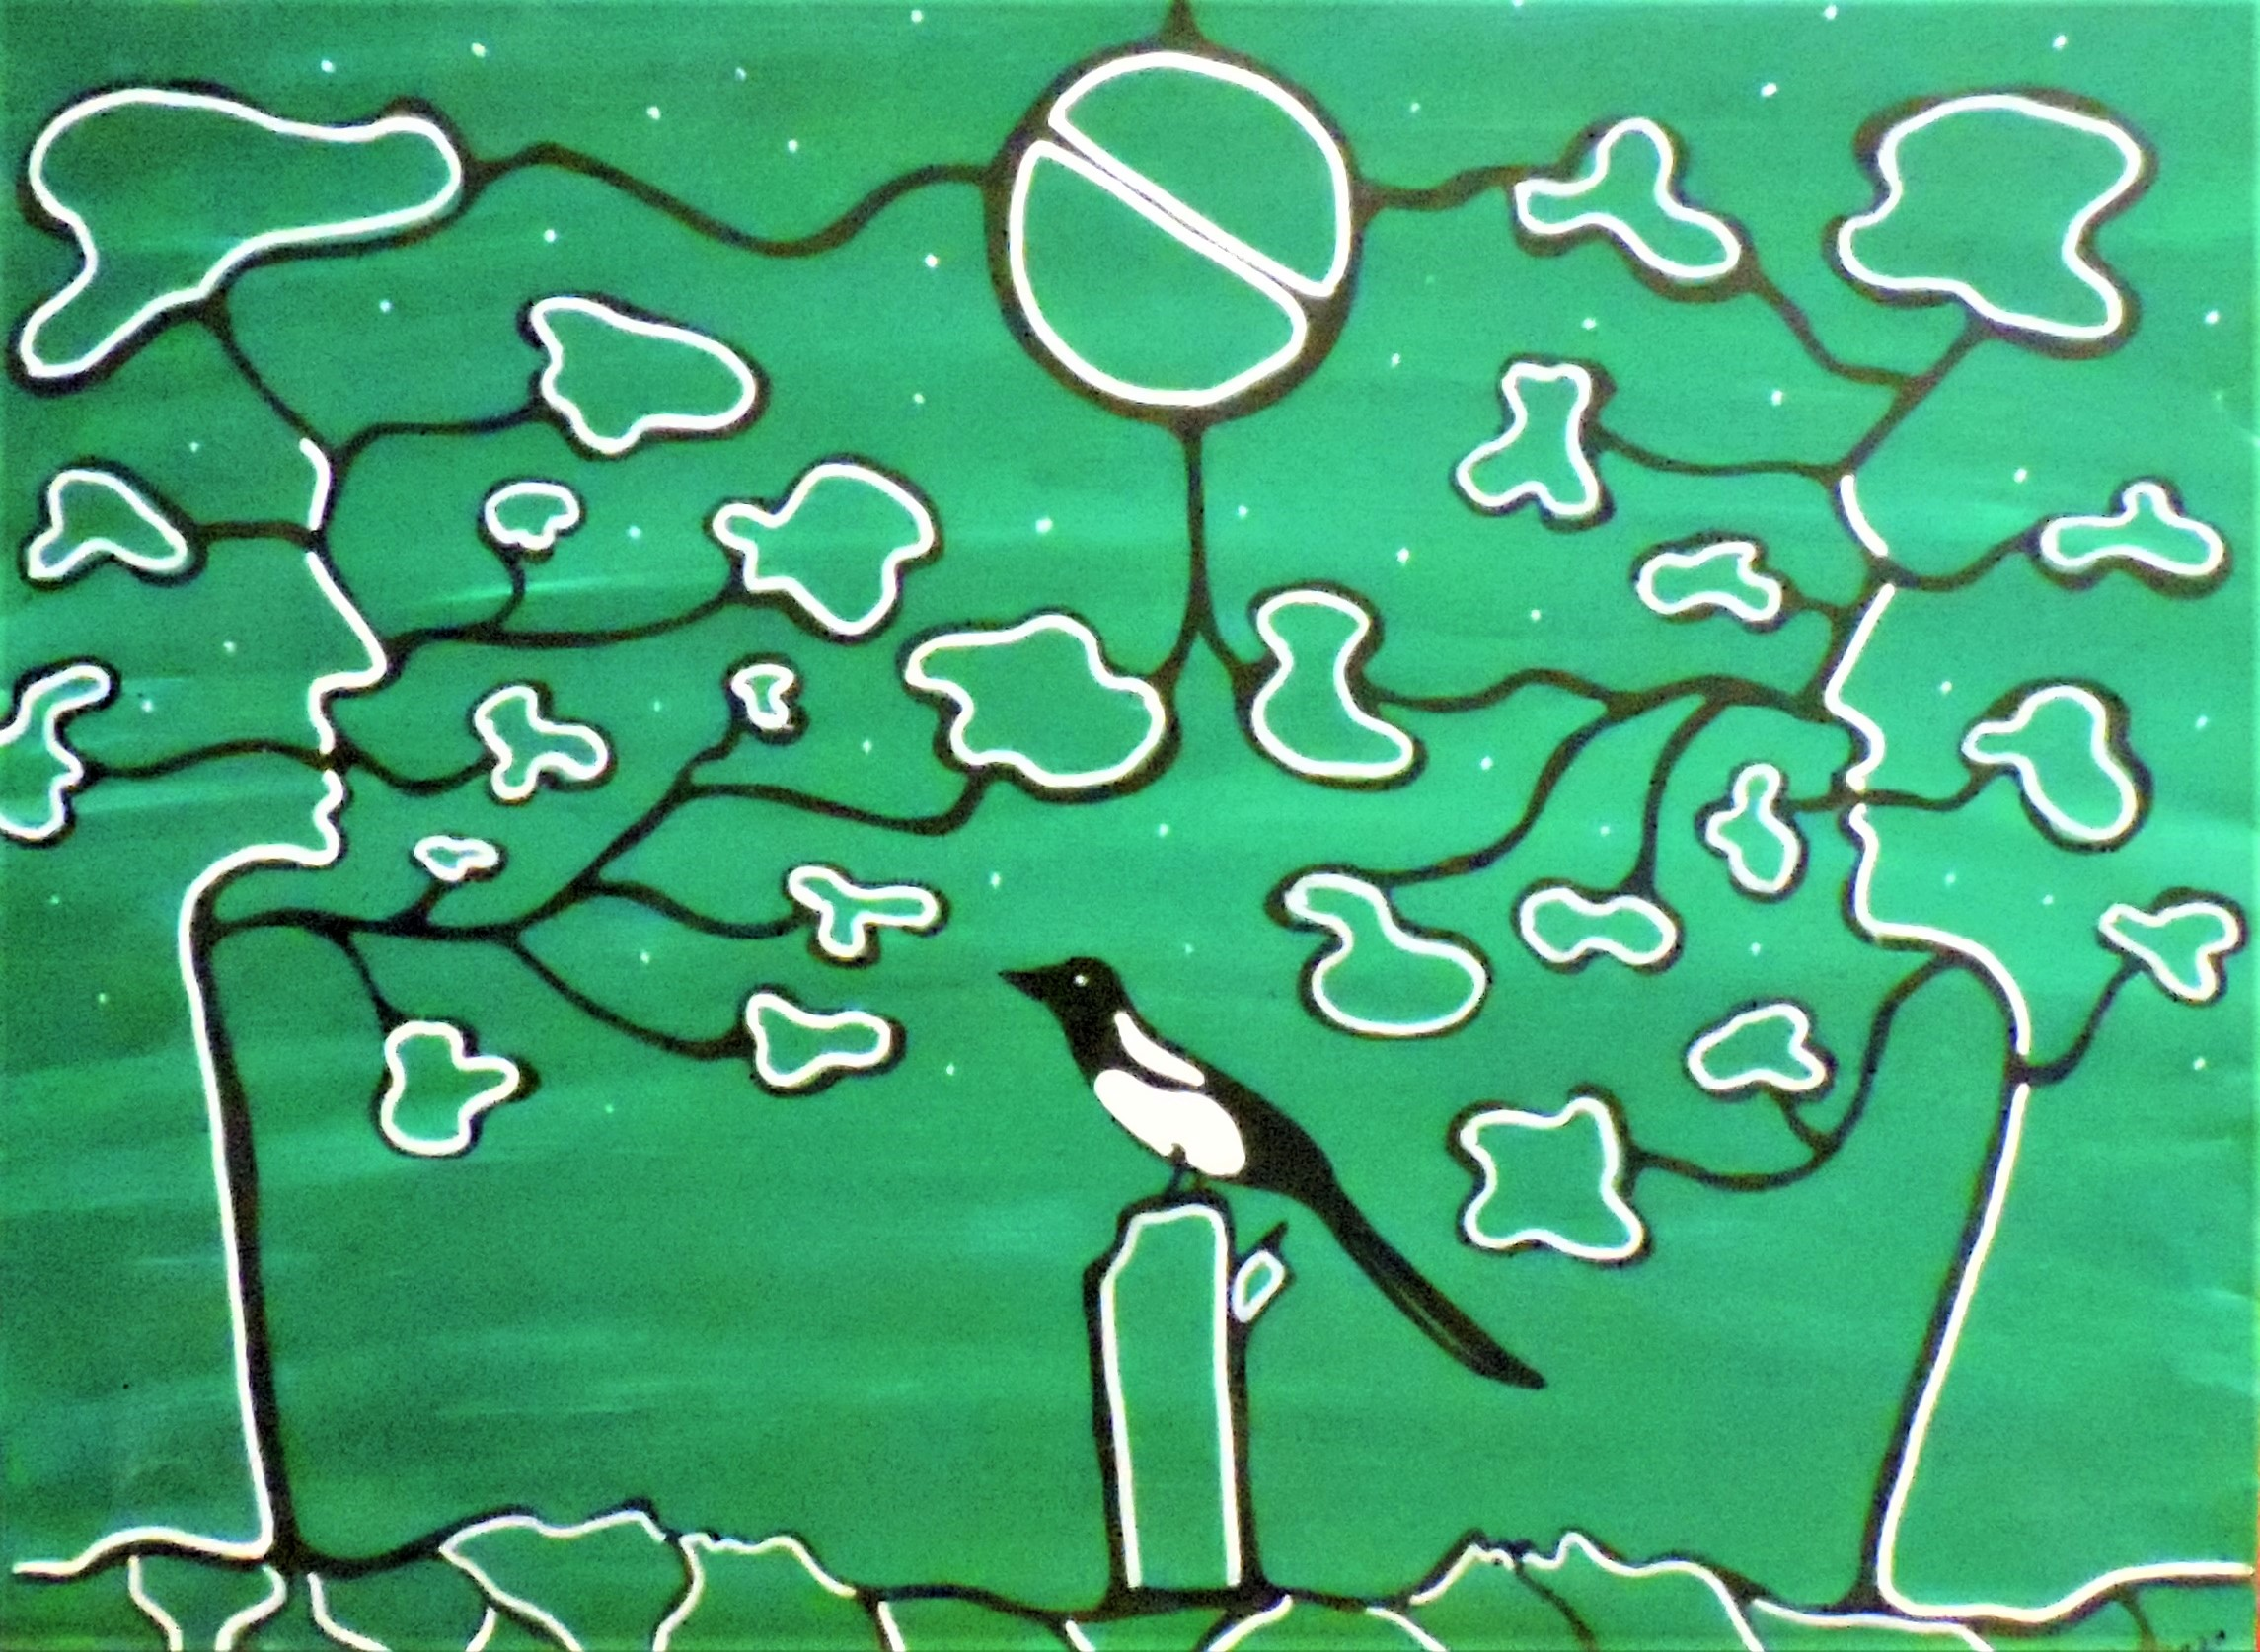 Painting of a magpie by Sherry Crawford.